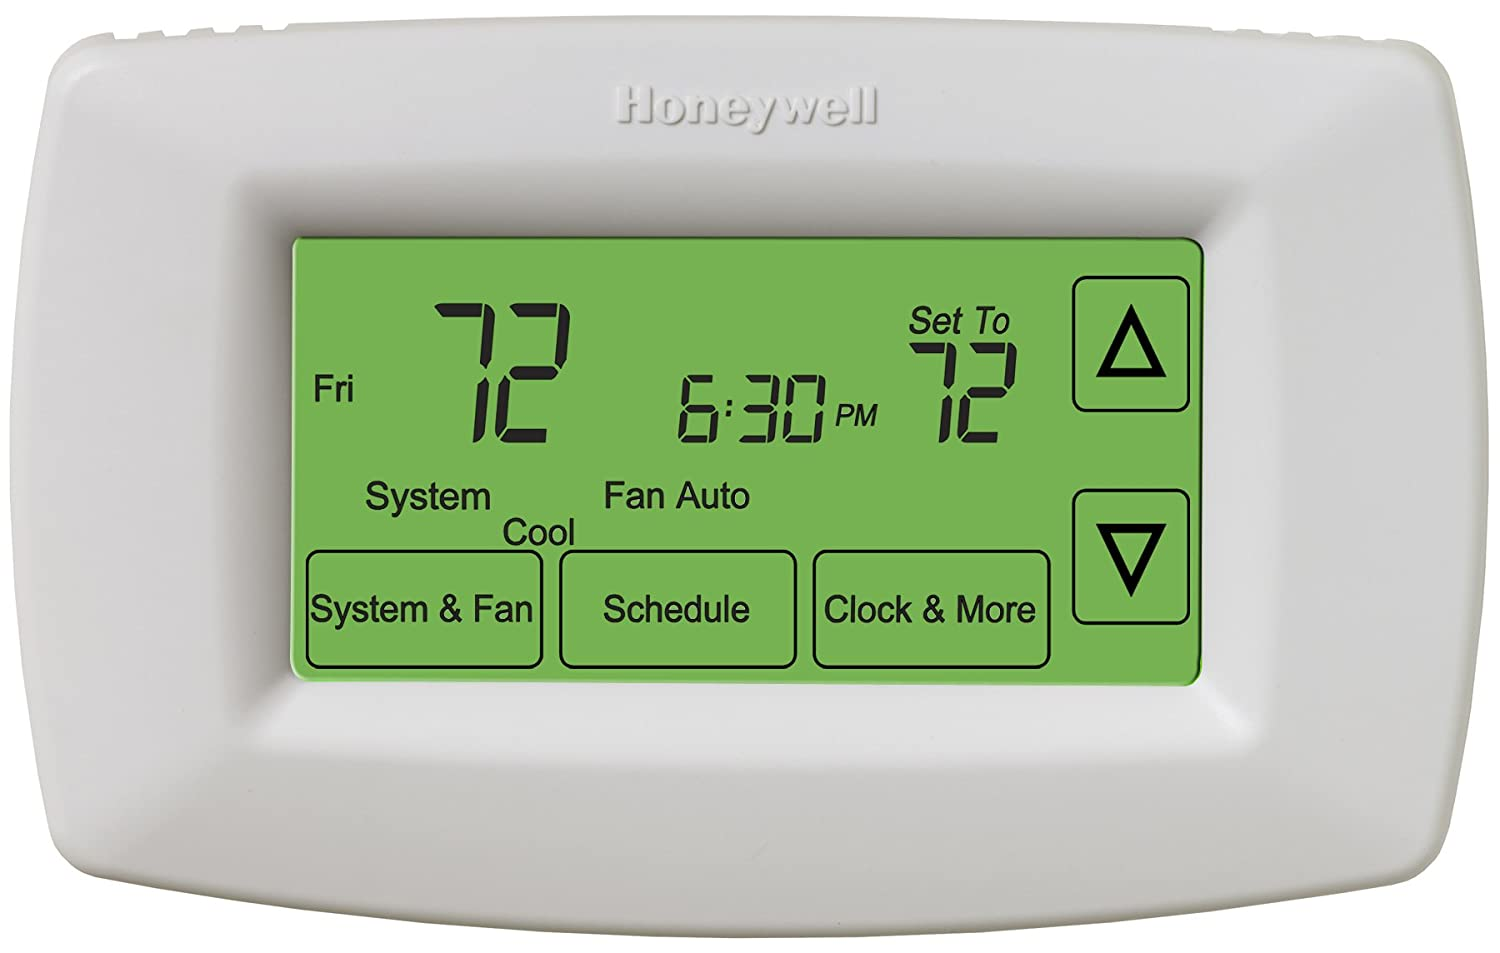 HoneywellRTH7600D Touchscreen 7-Day Programmable Thermostat